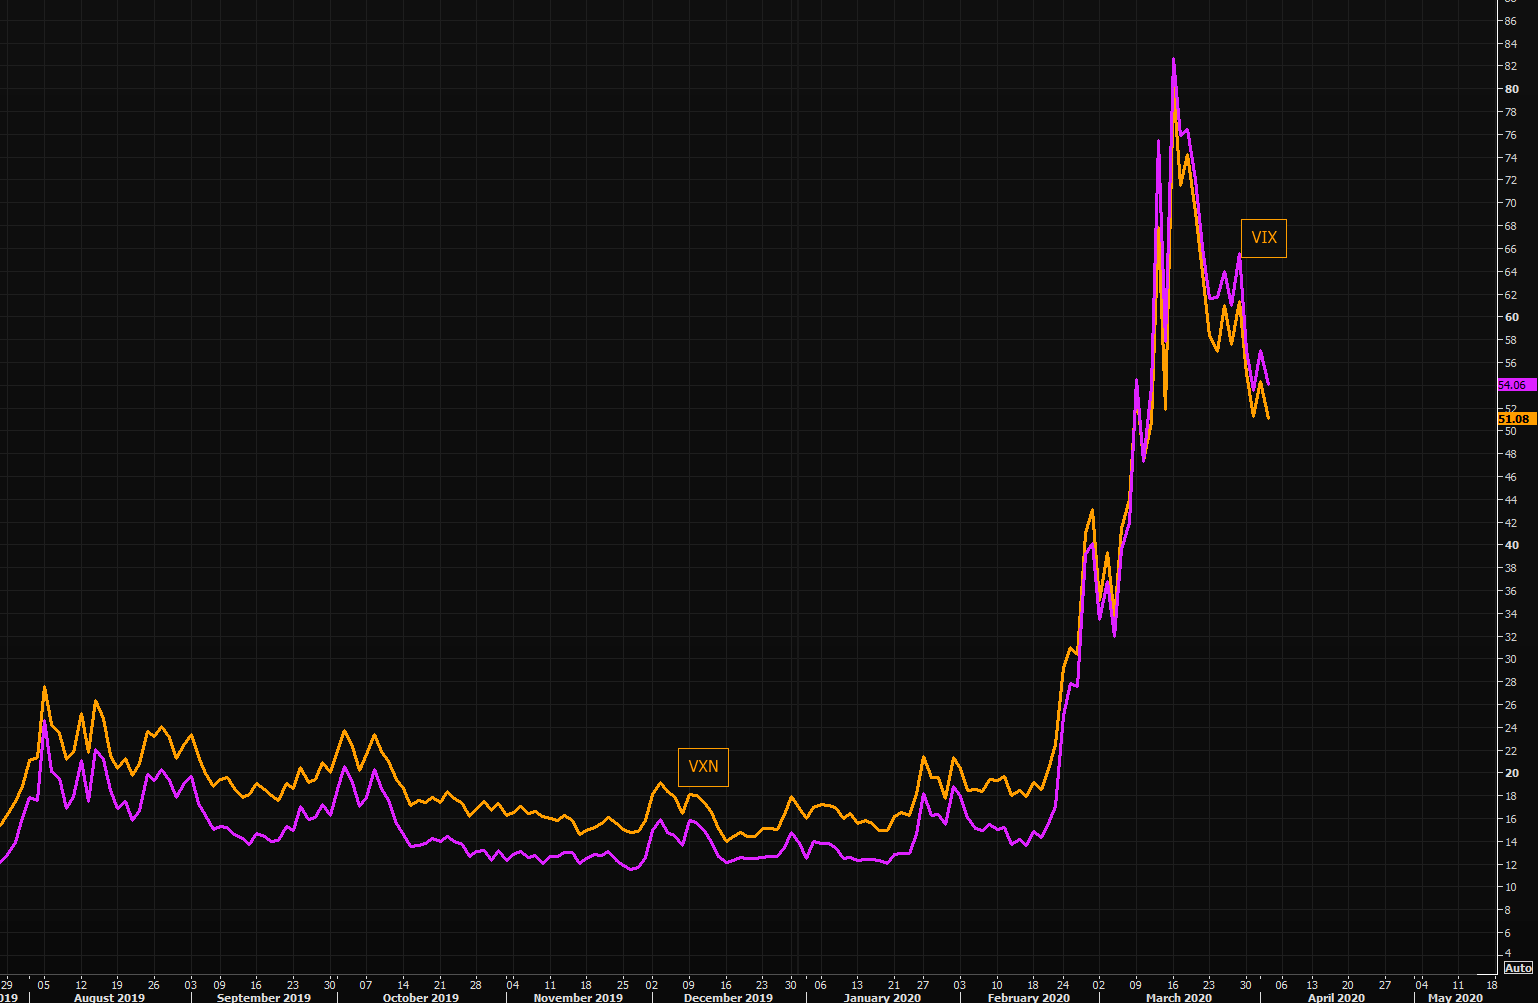 VIX and VXN - VXN making new post crisis lows...